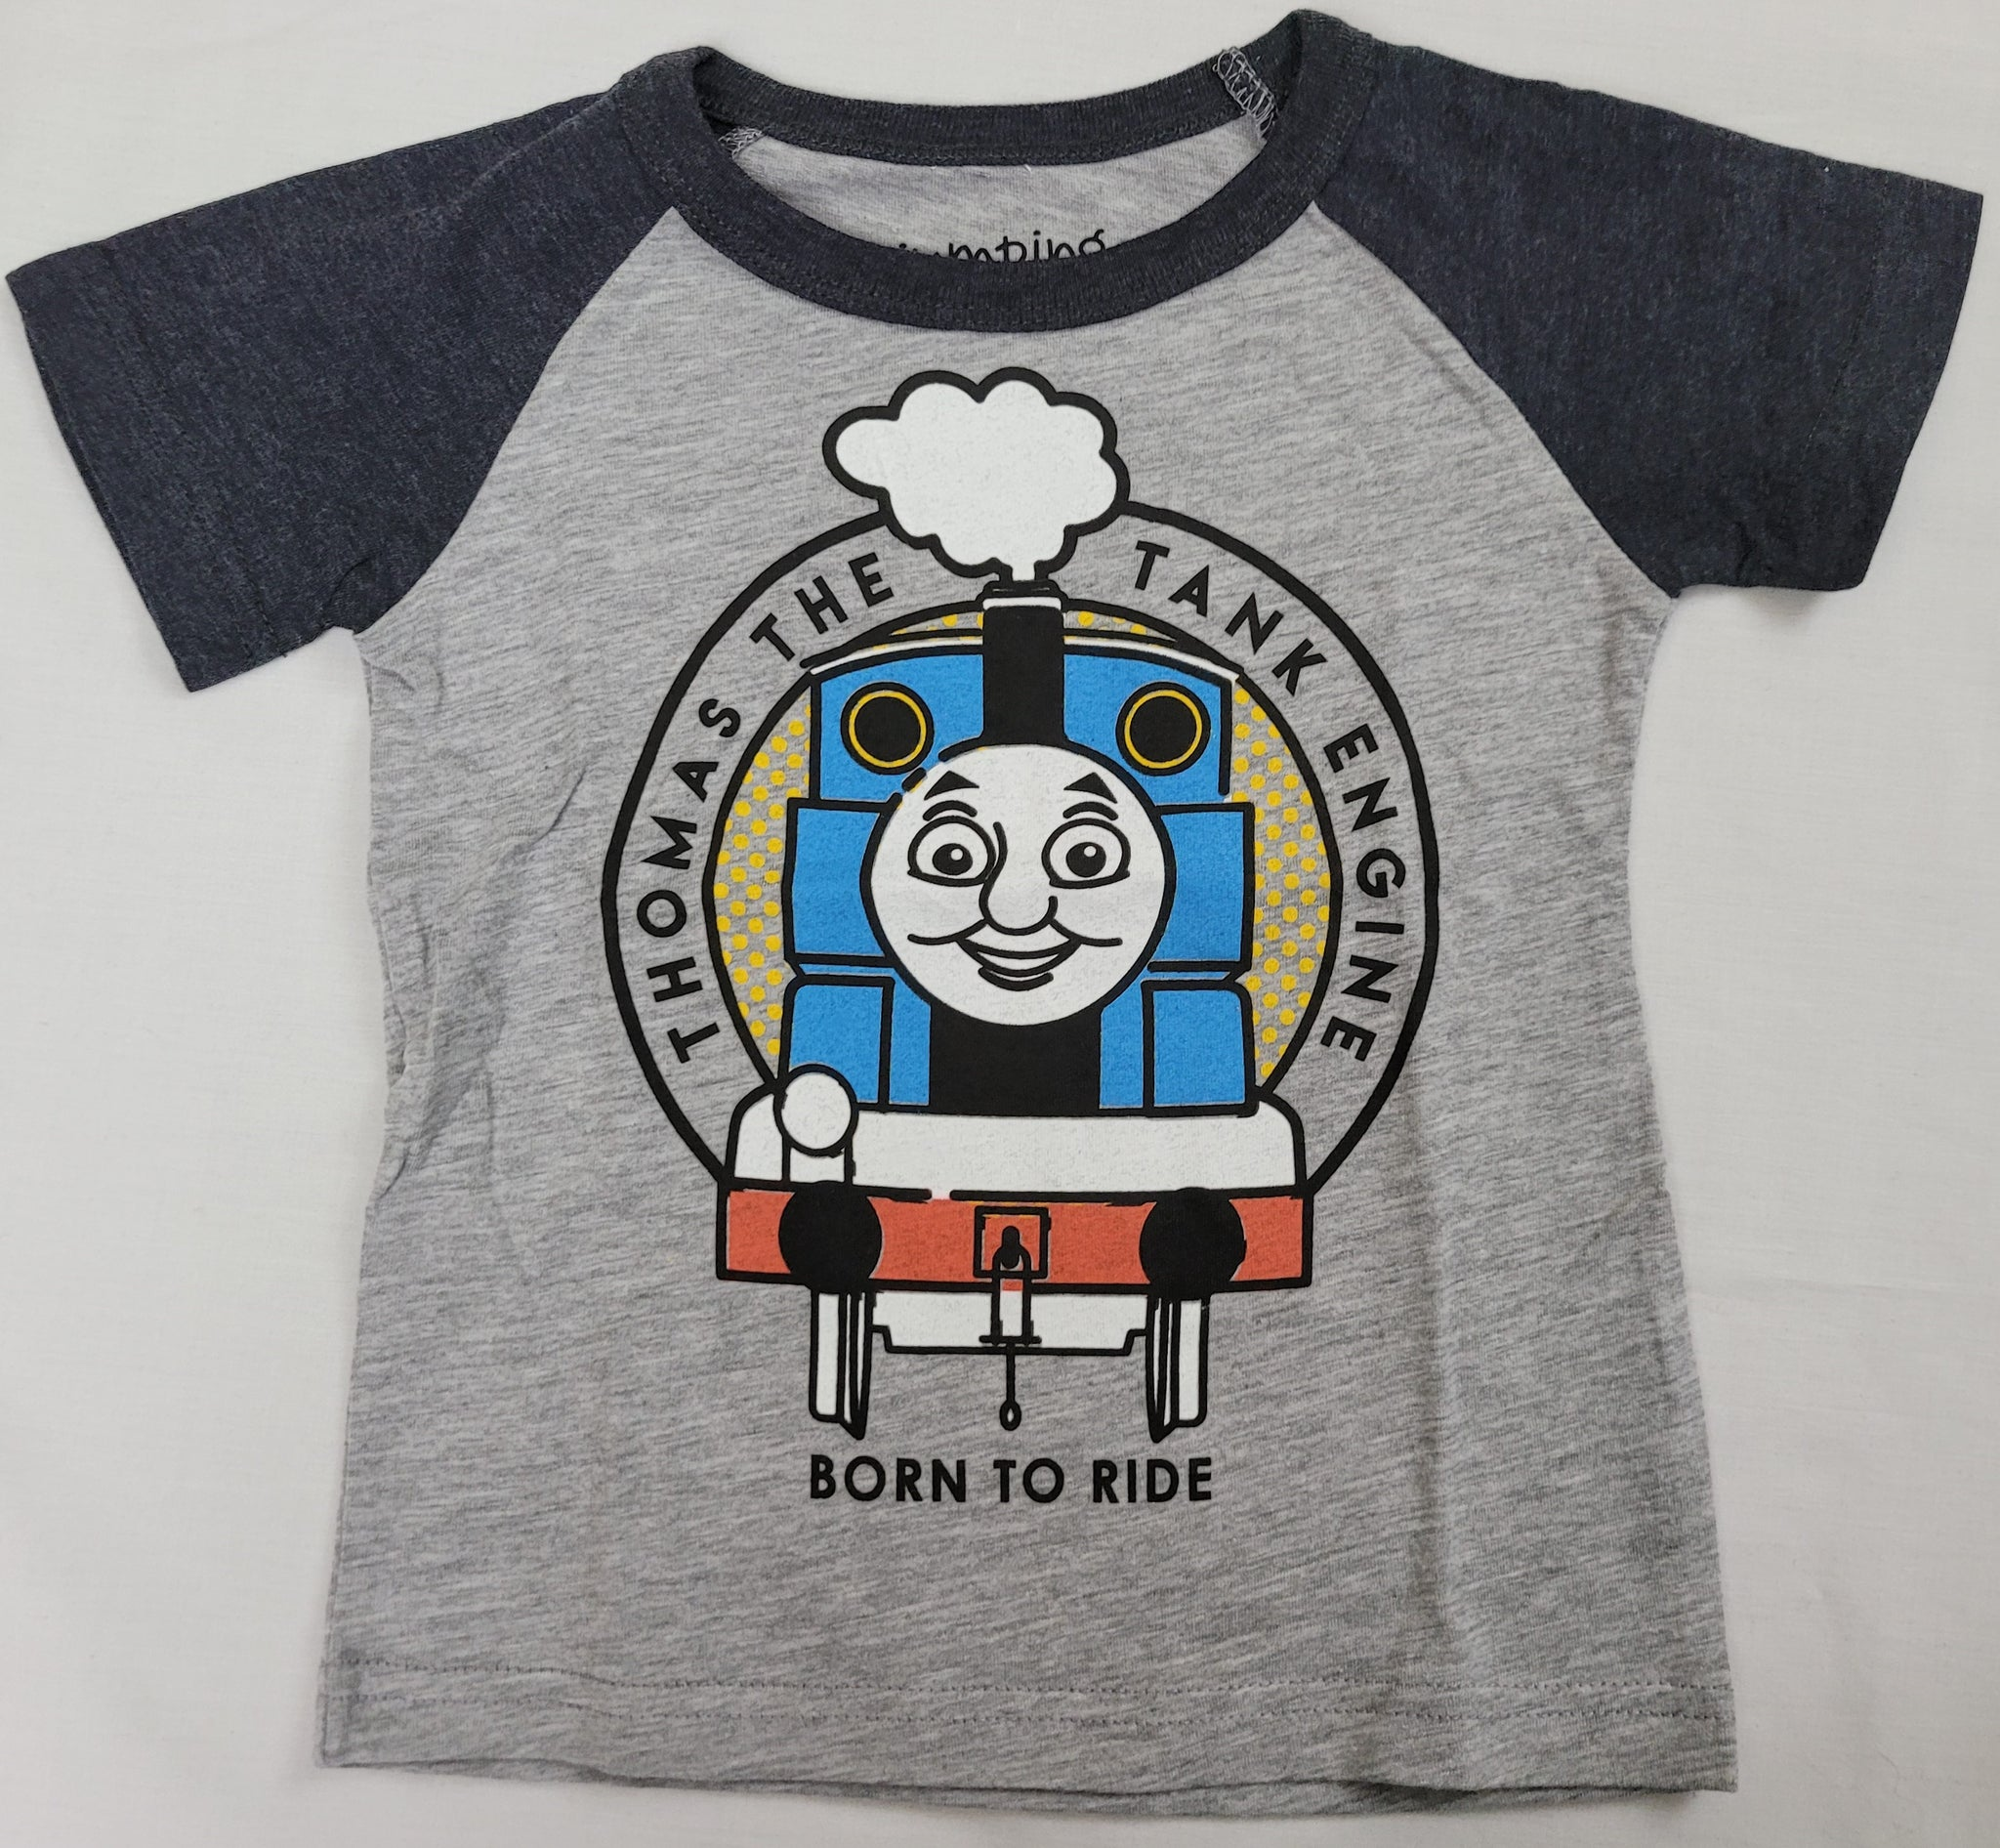 Born To Ride Thomas The Tank Engine Train Boys T-Shirt 2T 3T 4T 5T